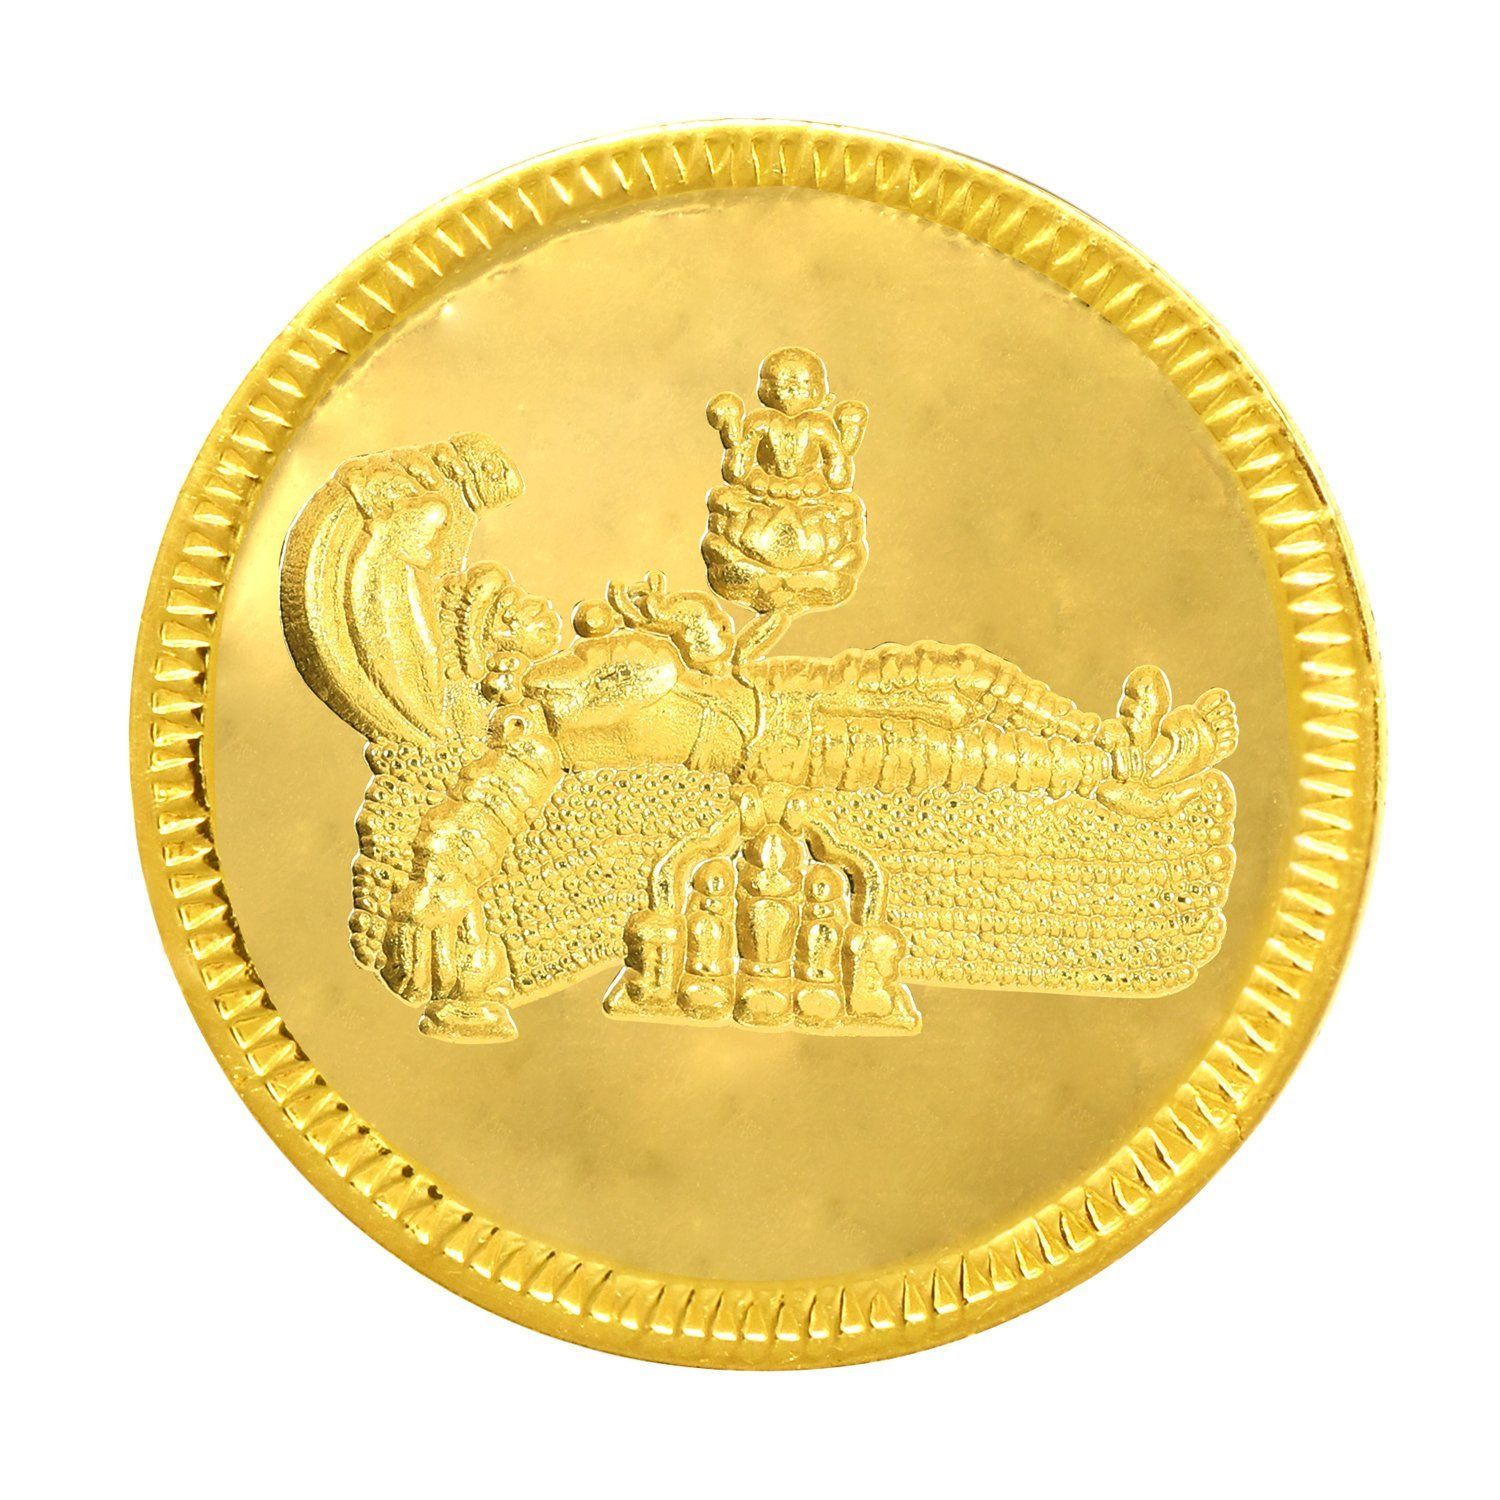 buy gold coin online india